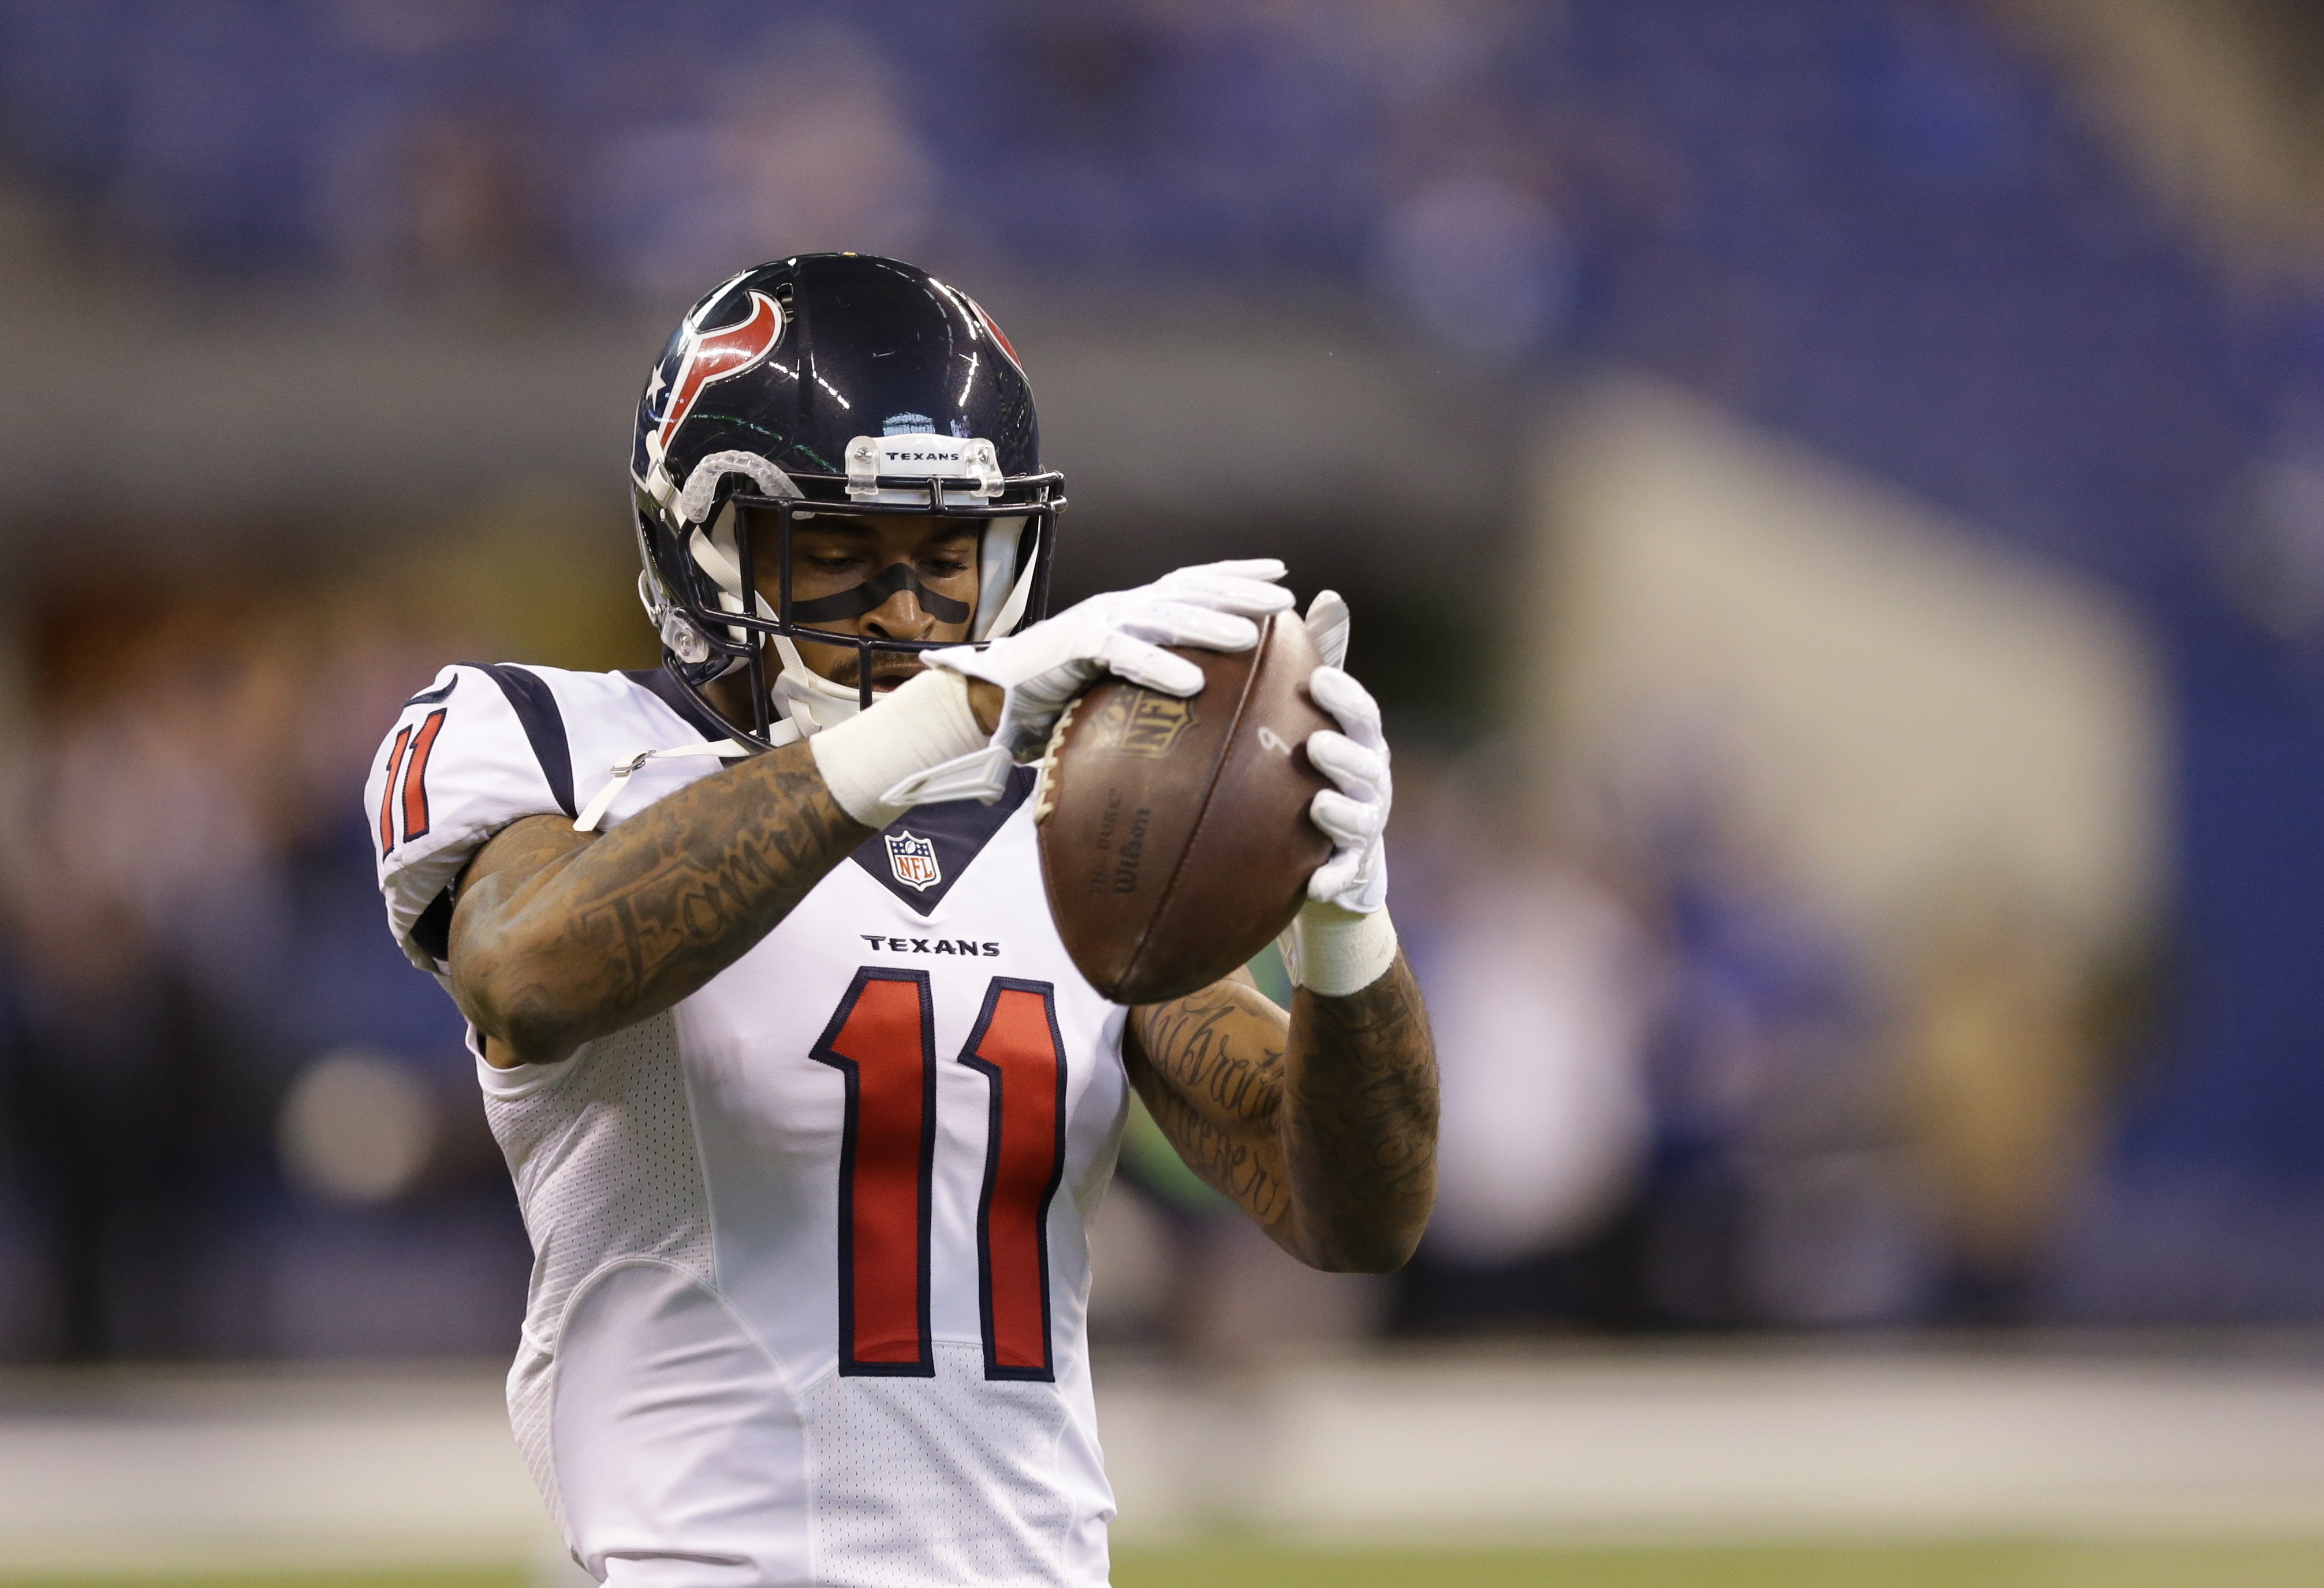 Houston Texans' Jaelen Strong (11) makes a catch before the start of an NFL football game between the Indianapolis Colts and the Houston Texans, Sunday, Dec. 20, 2015, in Indianapolis. (AP Photo/Michael Conroy)